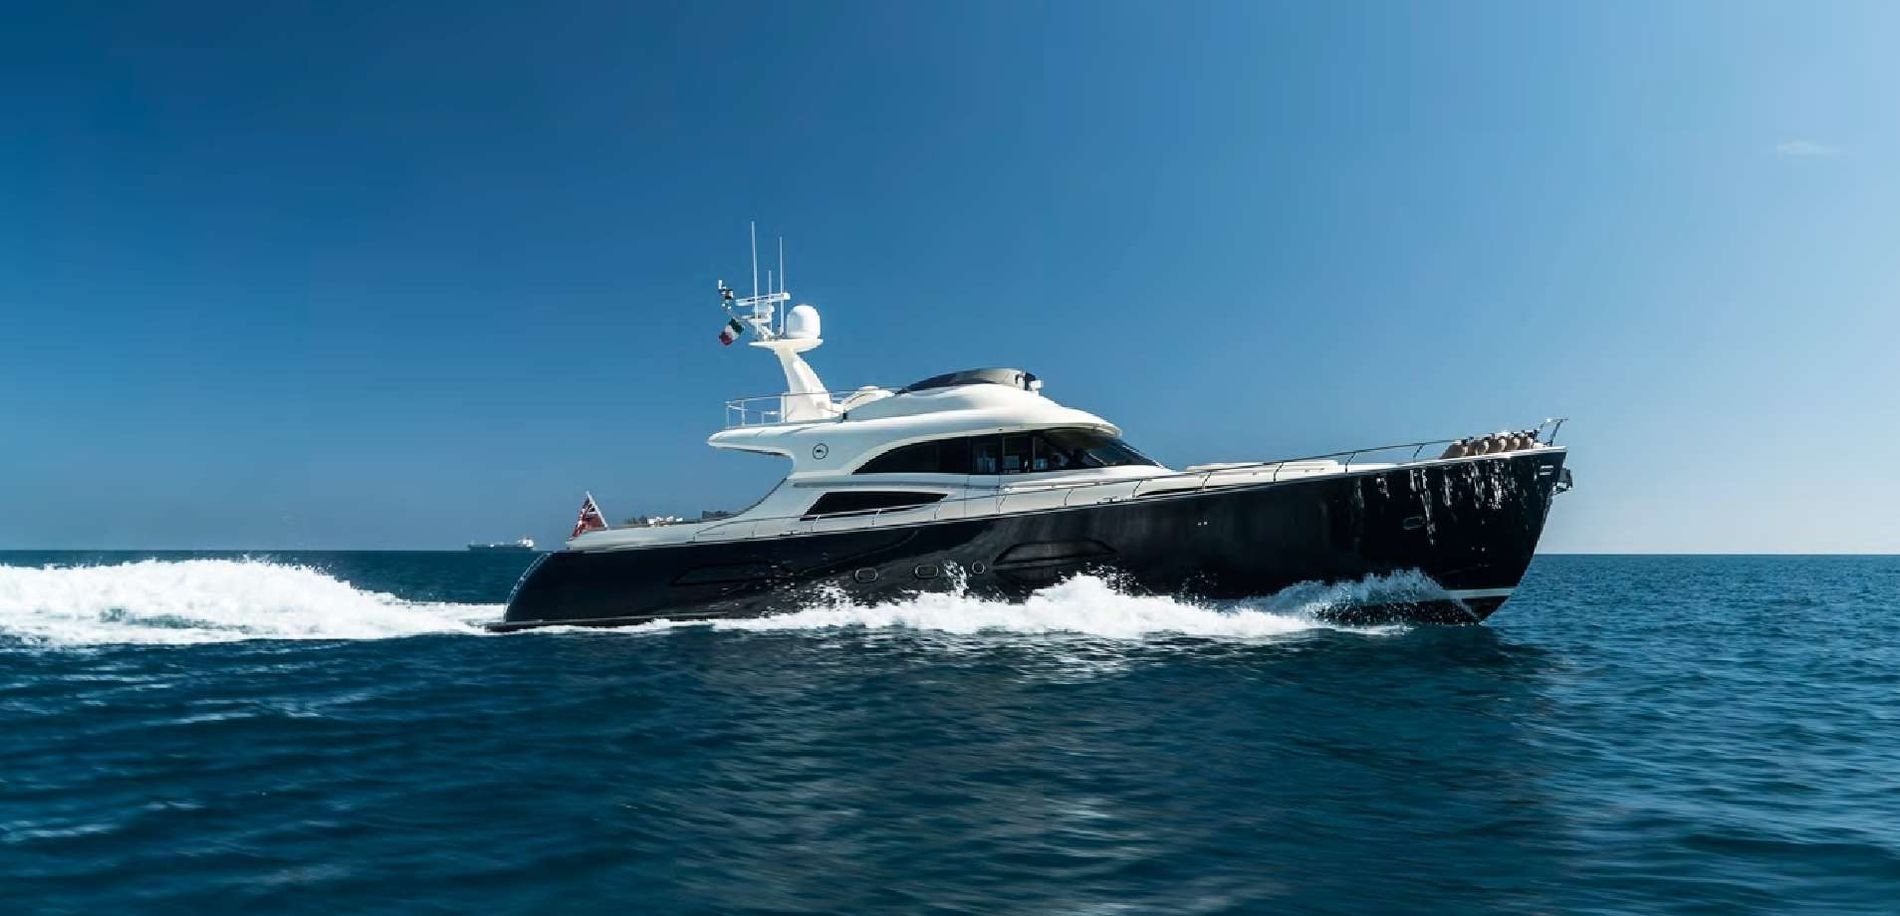 Lumiere Yacht Charter - Ritzy Charters